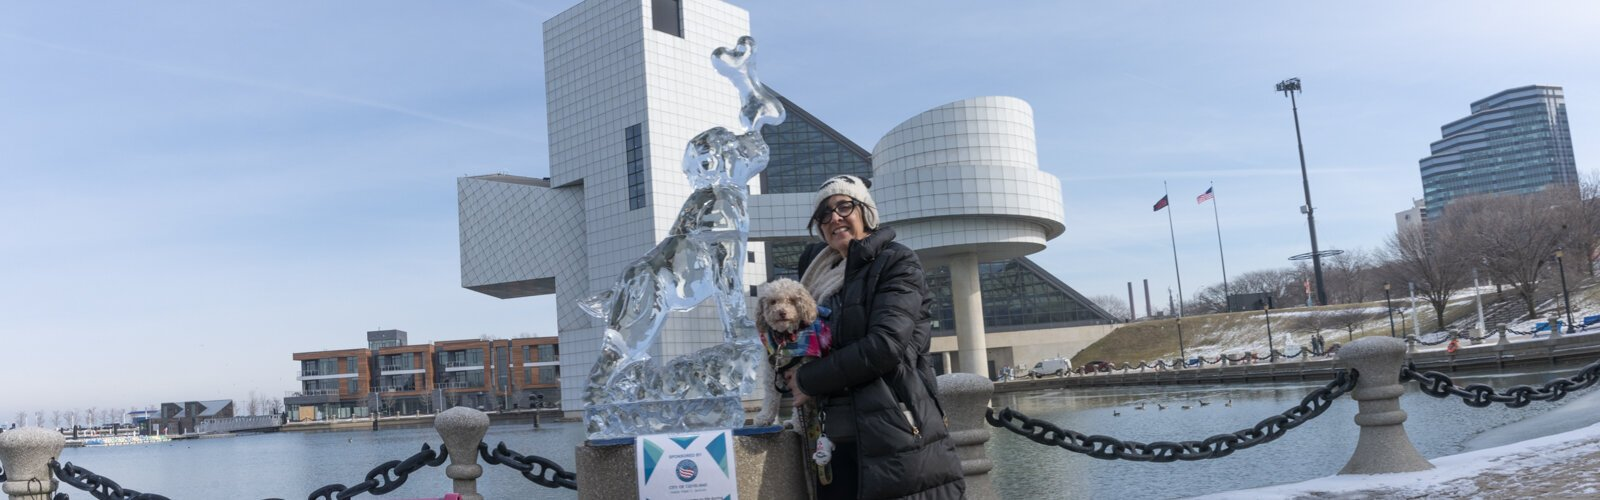 Lakewood resident Joanie and her dog at the North Coast Harbor Ice Fest